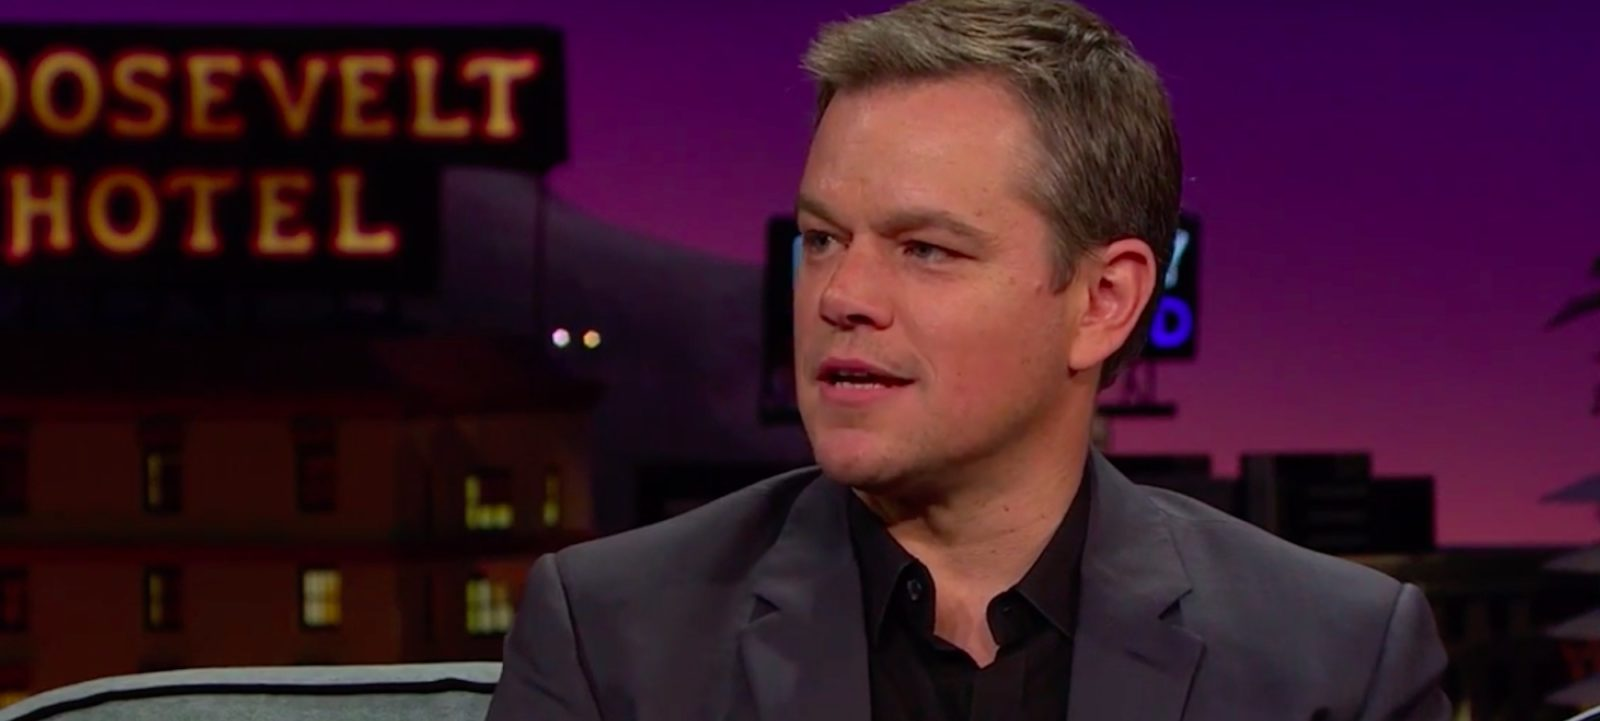 Matt Damon on 'The Late Late Show with James Corden'